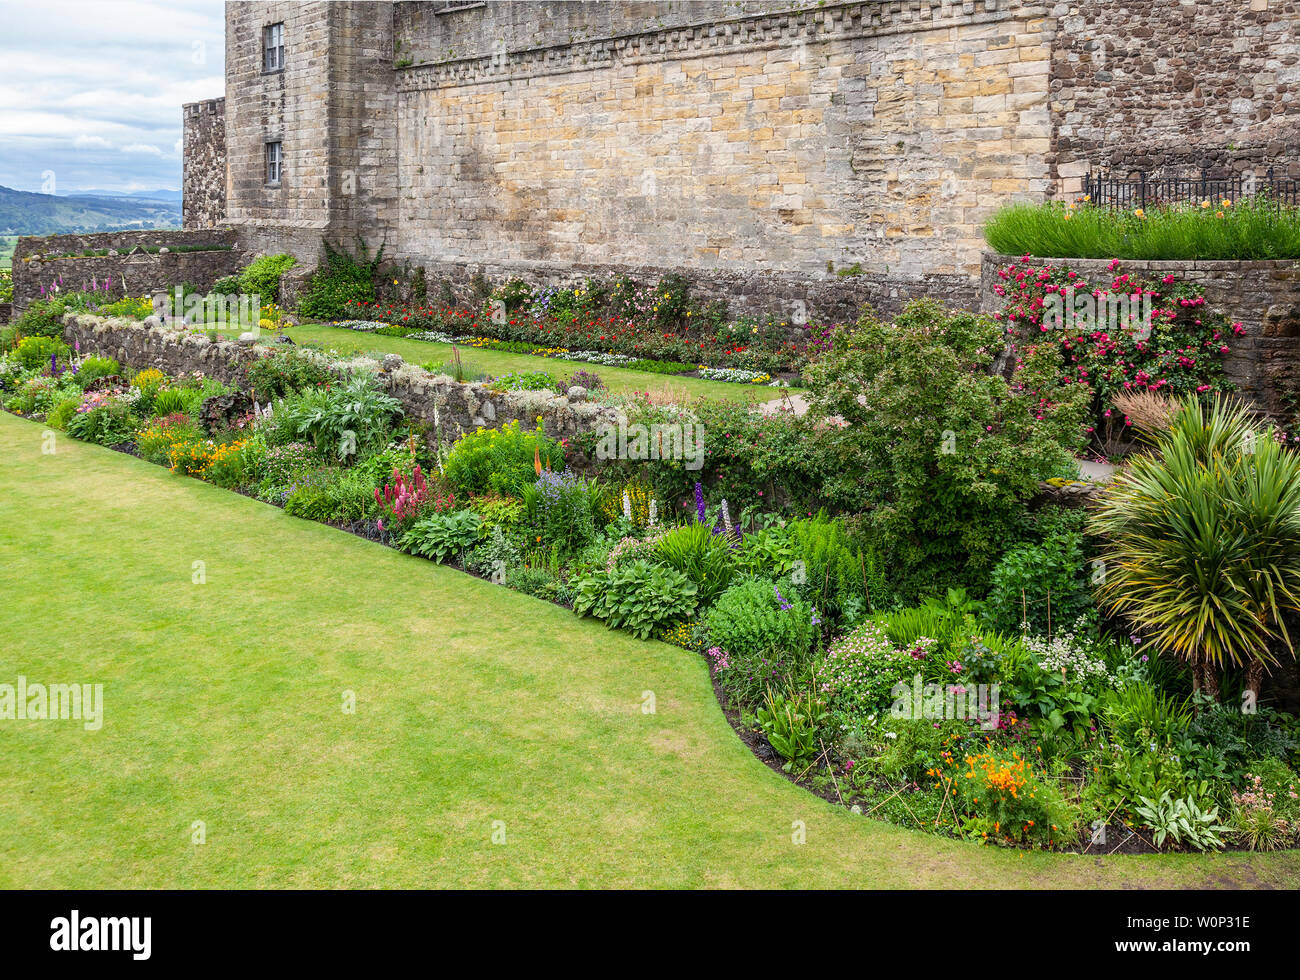 The Queen Anne Gardens, possibly dating from 1400, with lawns and herbaceous borders, under Stirling Castle, Scotland, UK Stock Photo